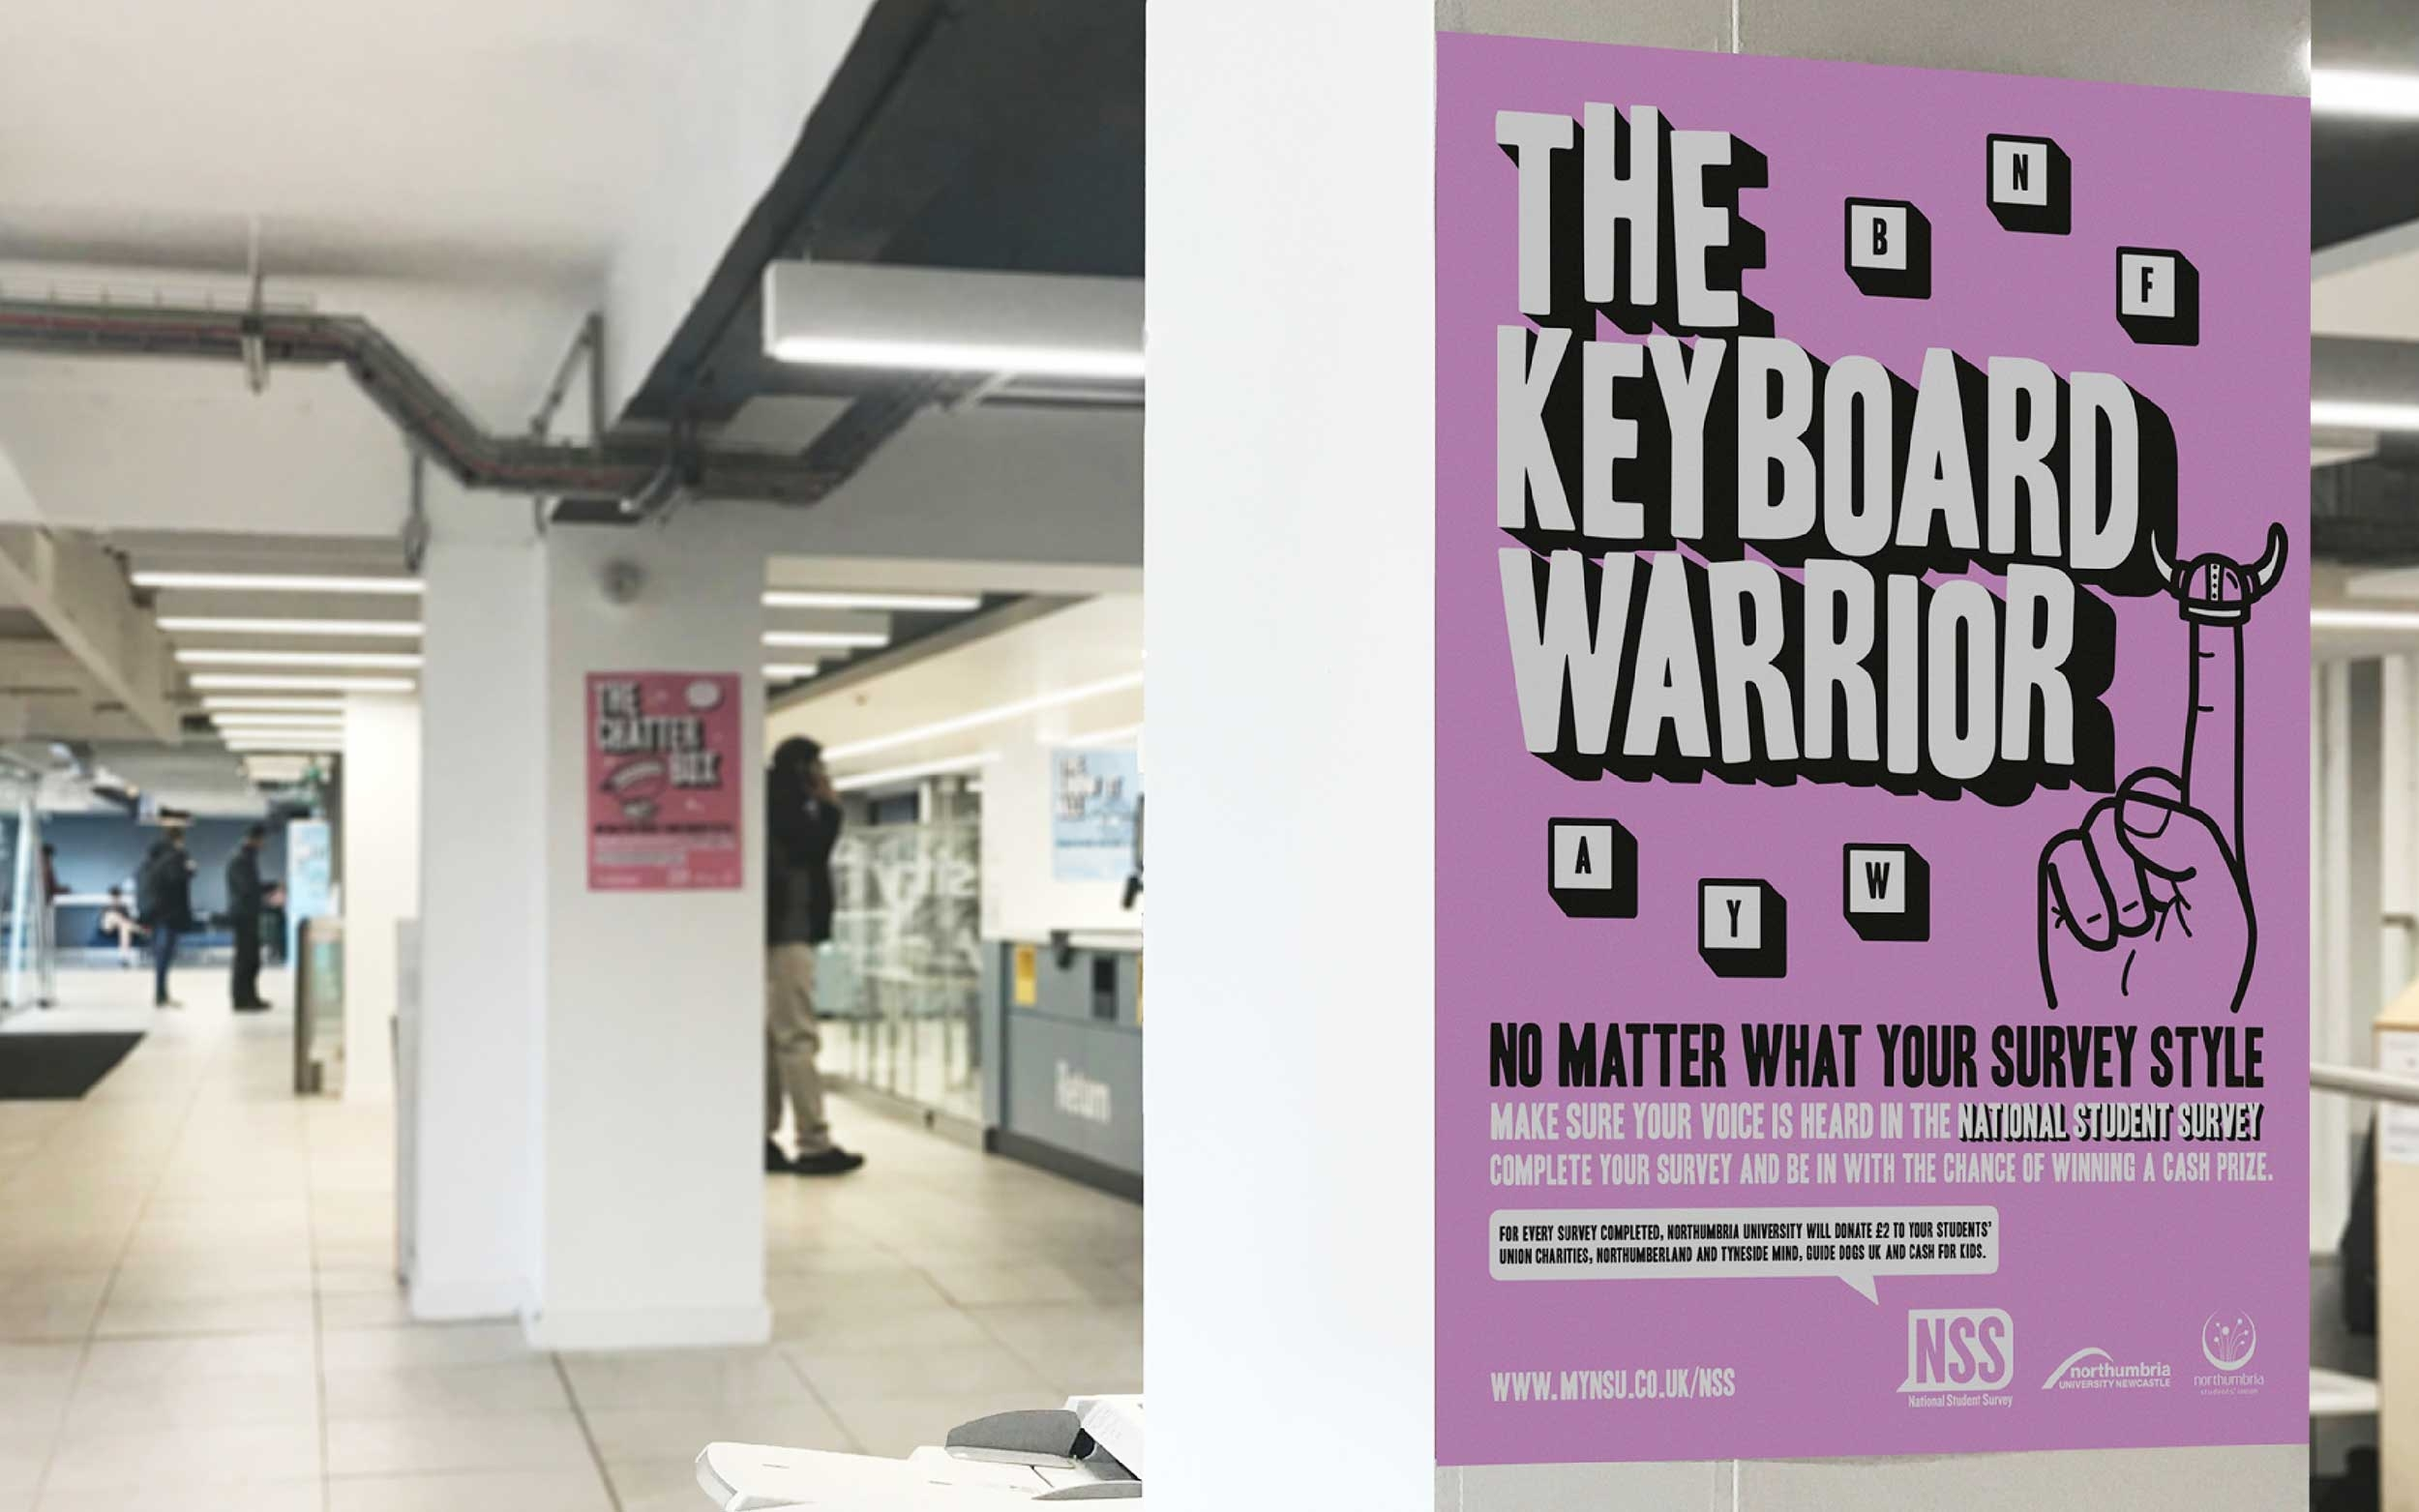 National Student Survey campaign for Northumbria University by Altogether Creative.